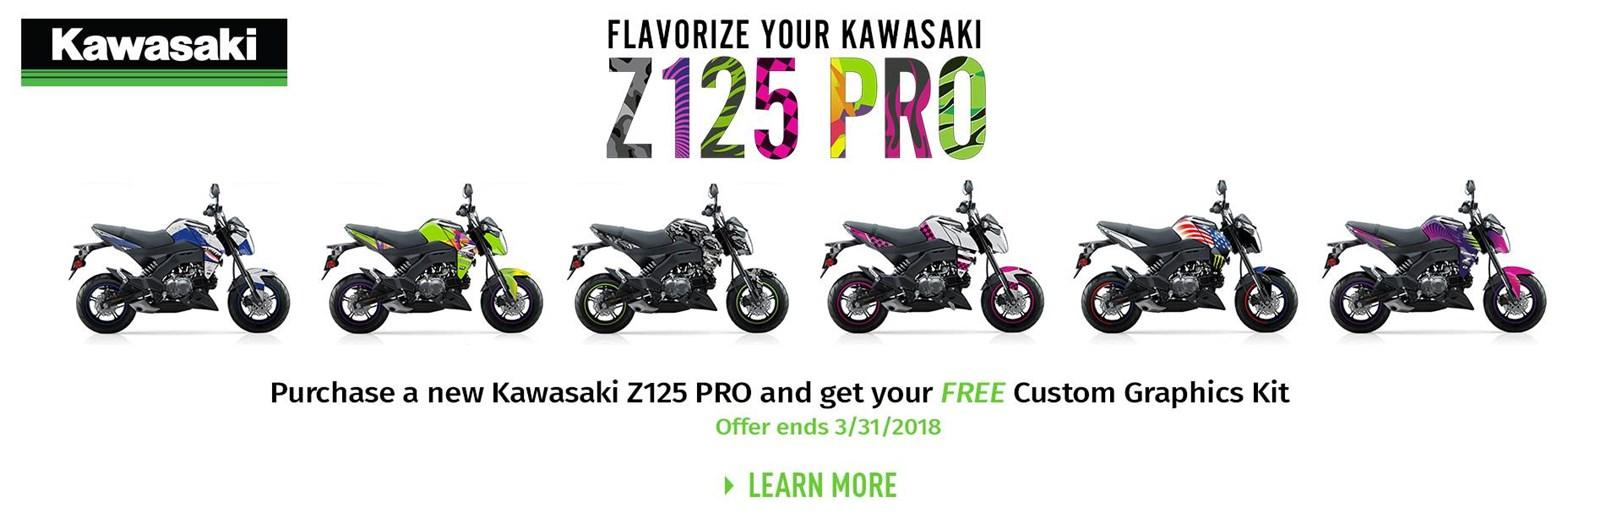 Kawasaki - Z125 Pro GET A FREE CUSTOM GRAHICS KIT